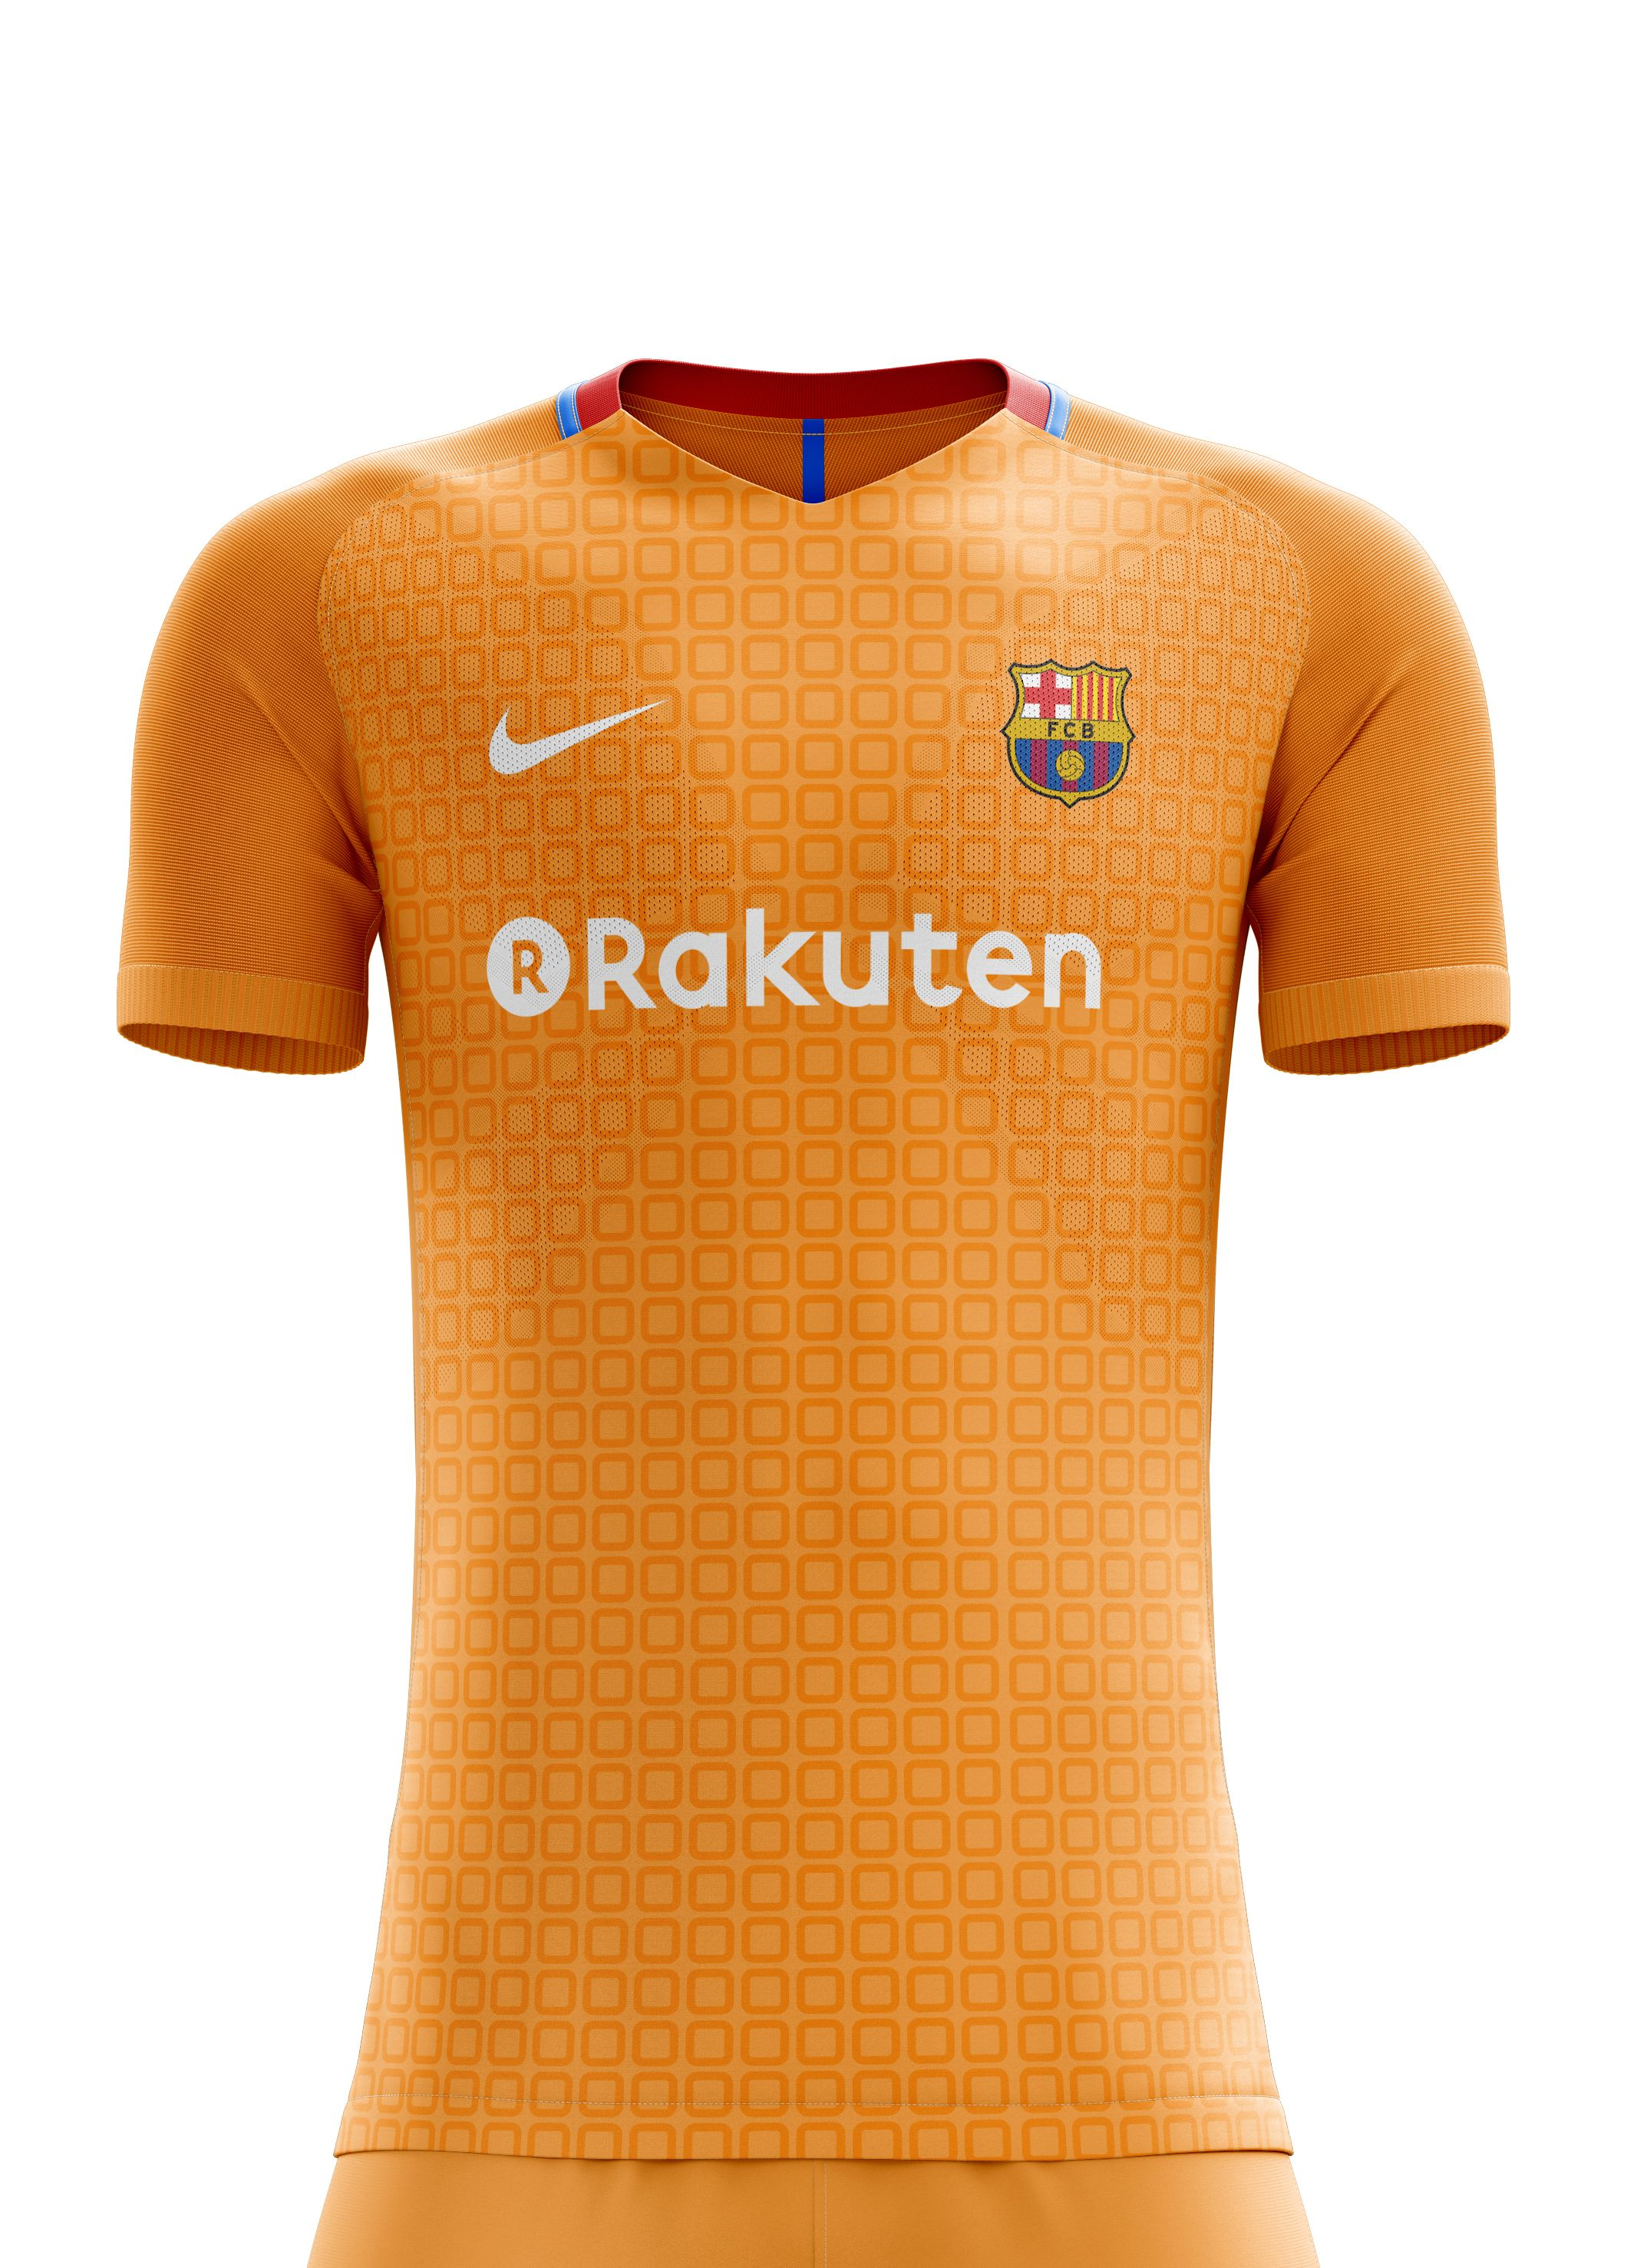 ce91f0bb9 I designed football kits for FC Barcelona for the upcoming season 18 19. the  home kit is inspired by shape of ...